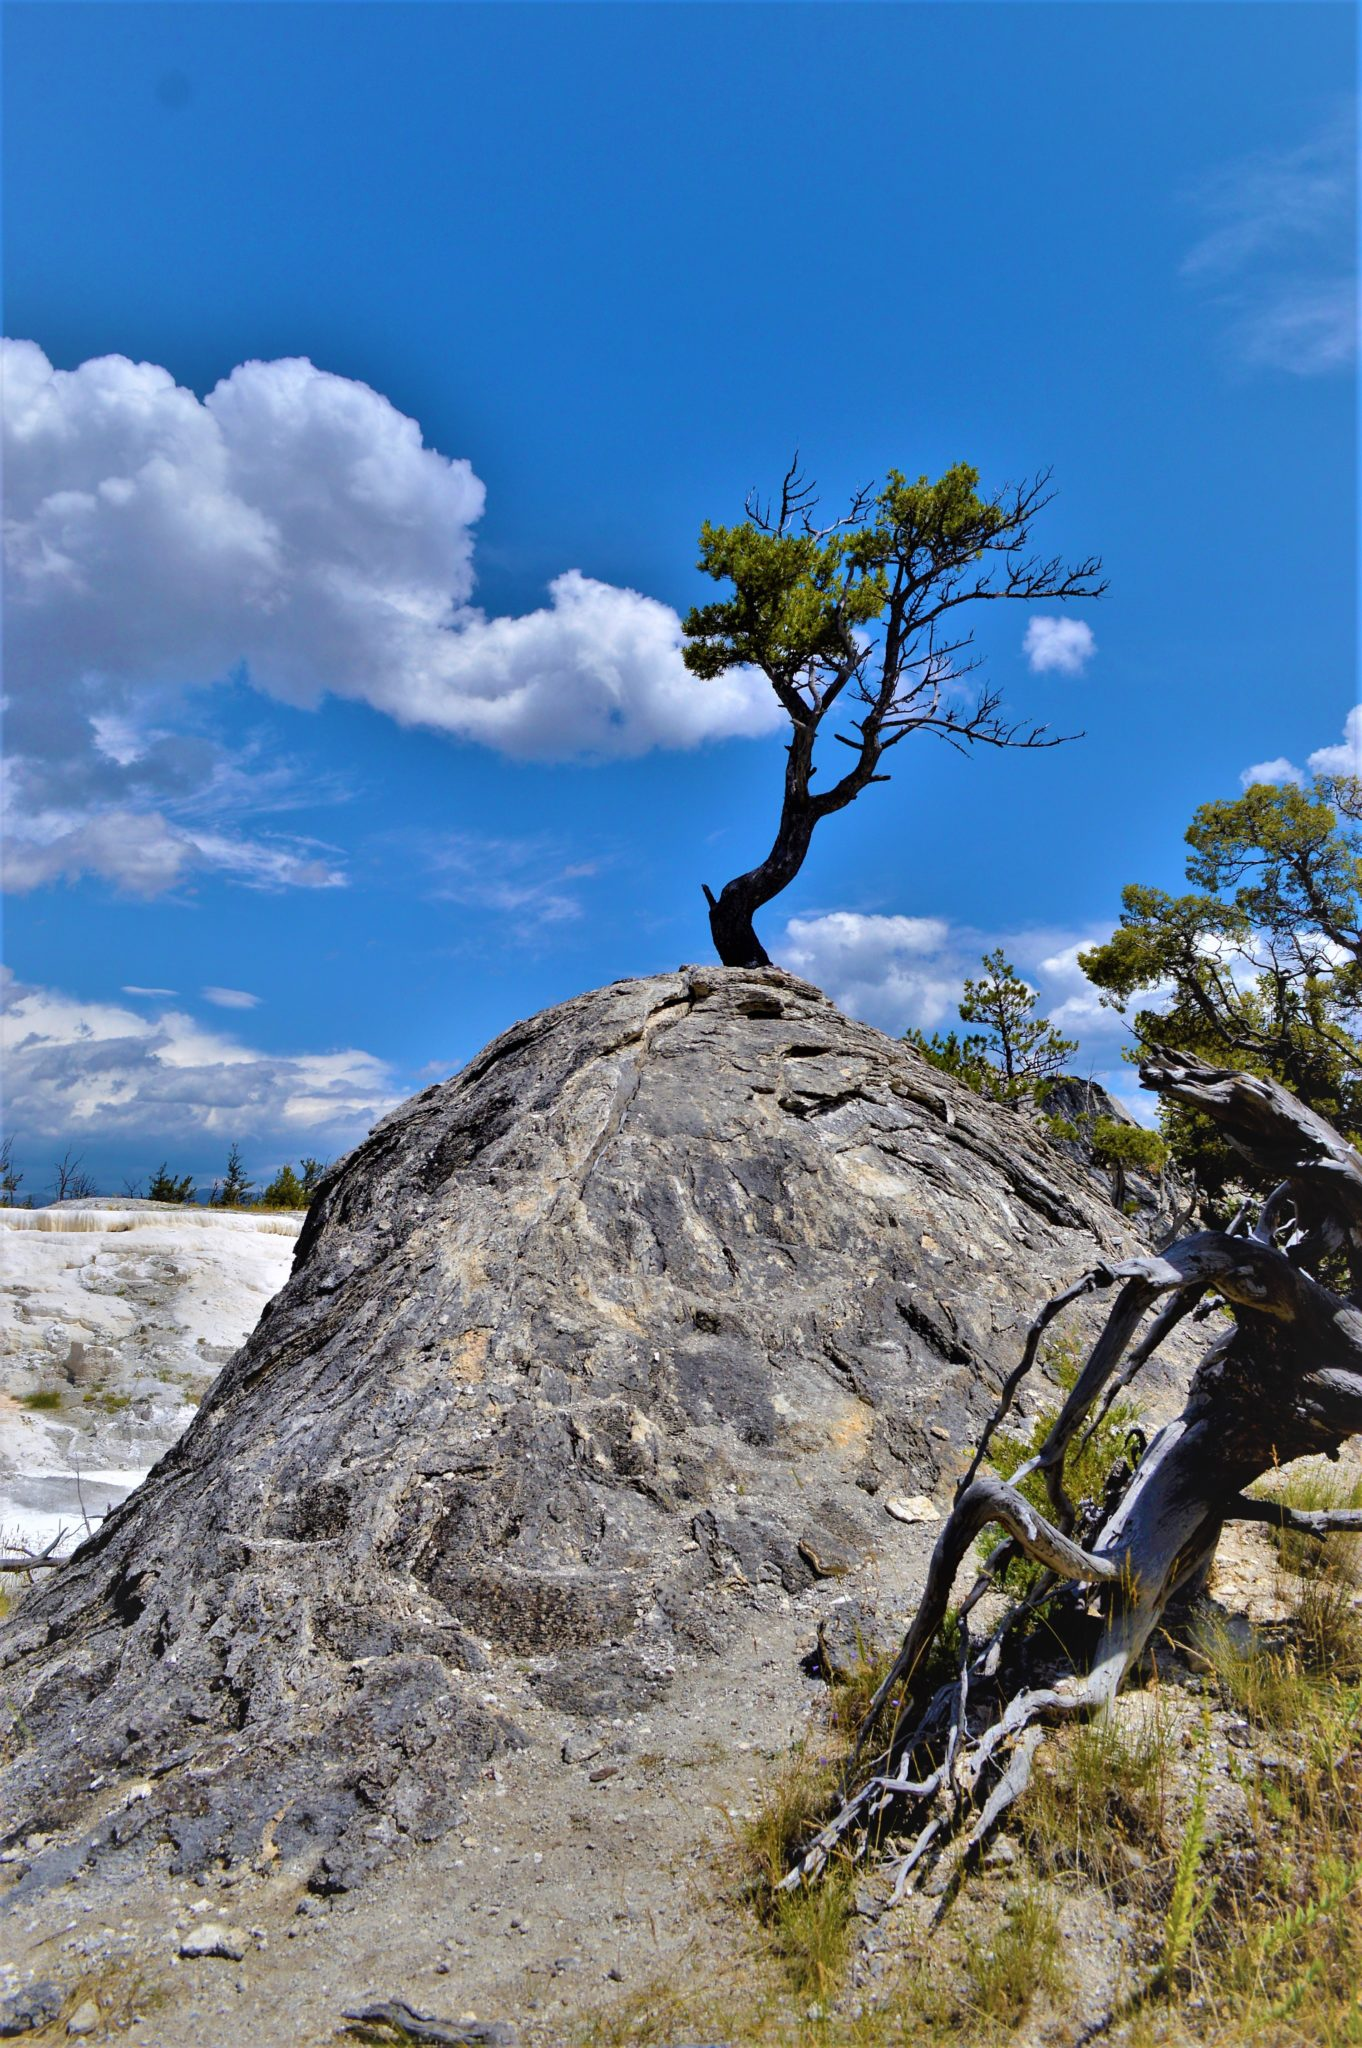 Tree on rock, Yellowstone National Park, Usa